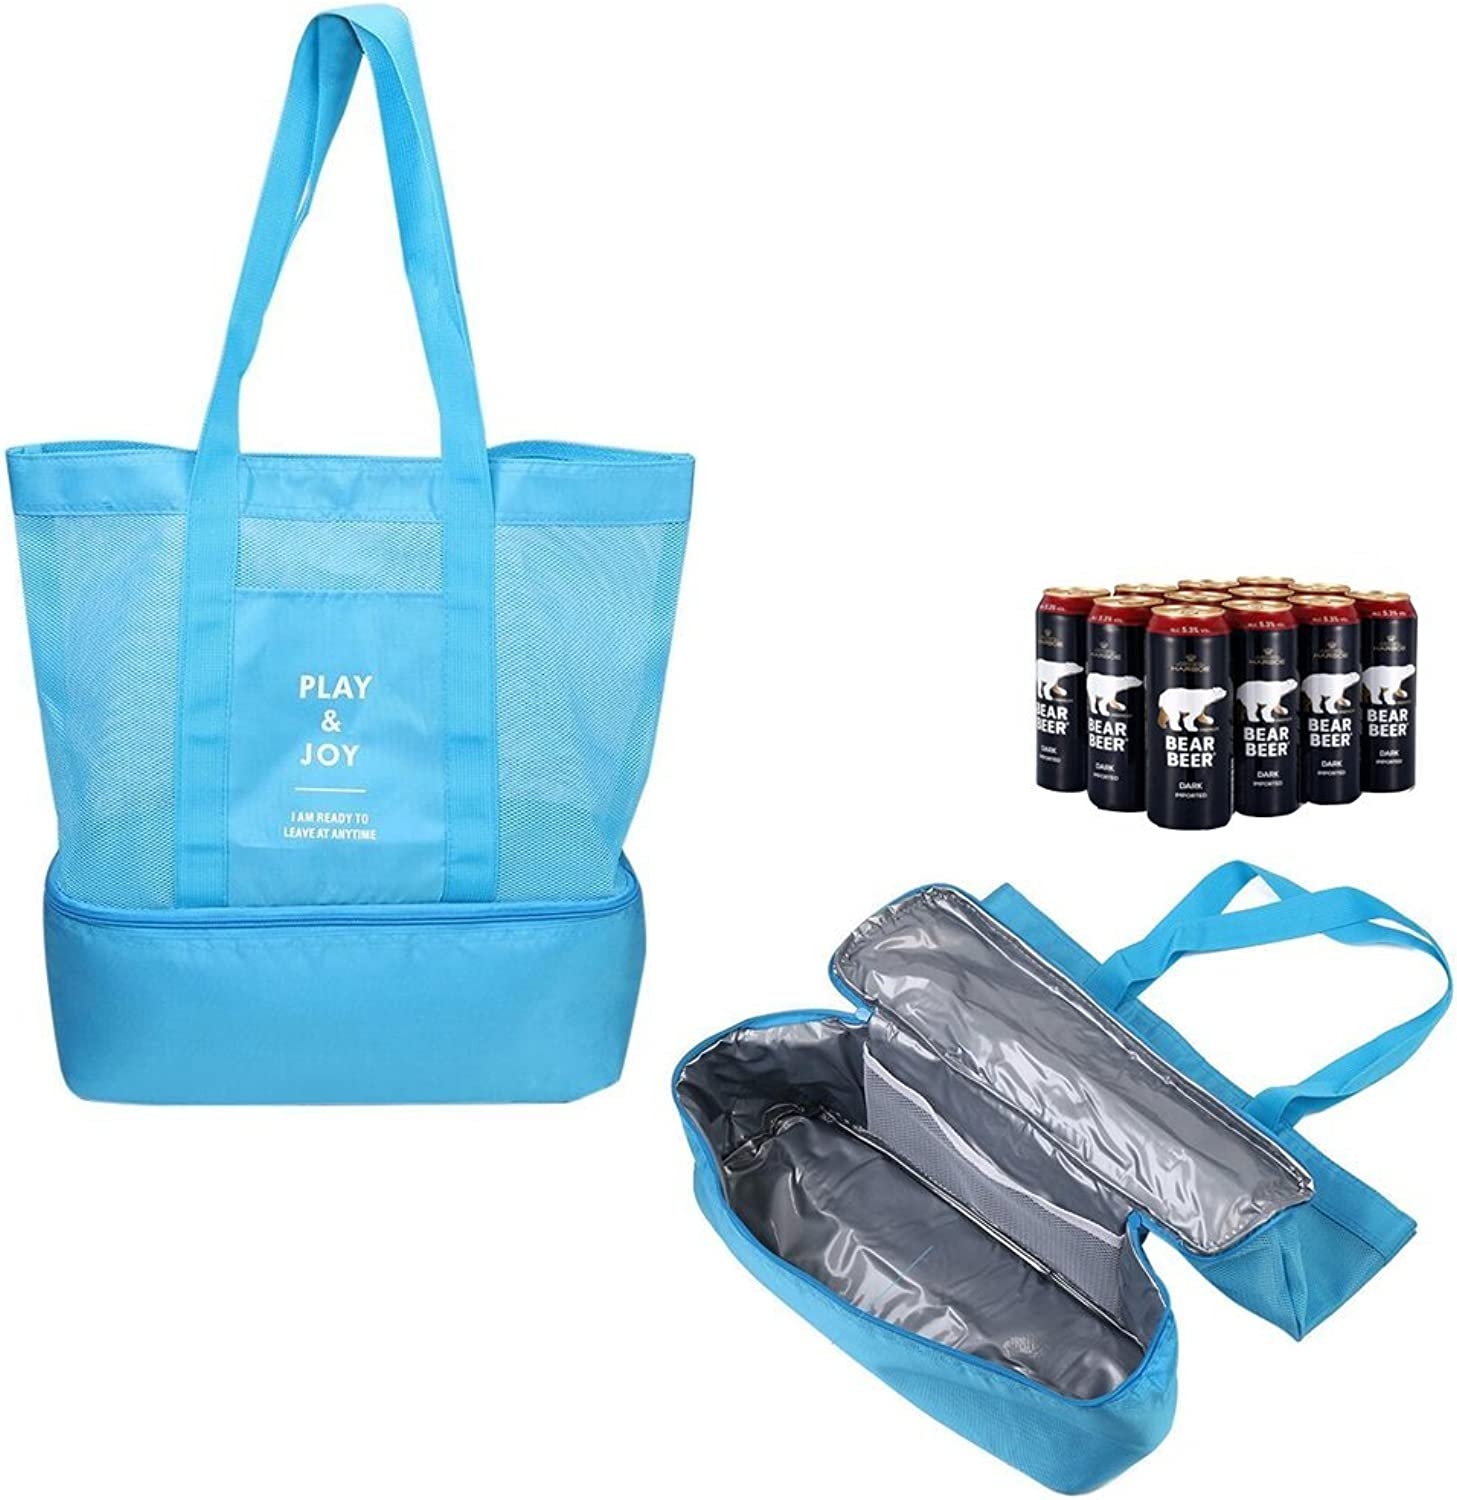 Large Tote Bag, willway Lightweight 2 in 1 Mesh Beach Bag with Cooler